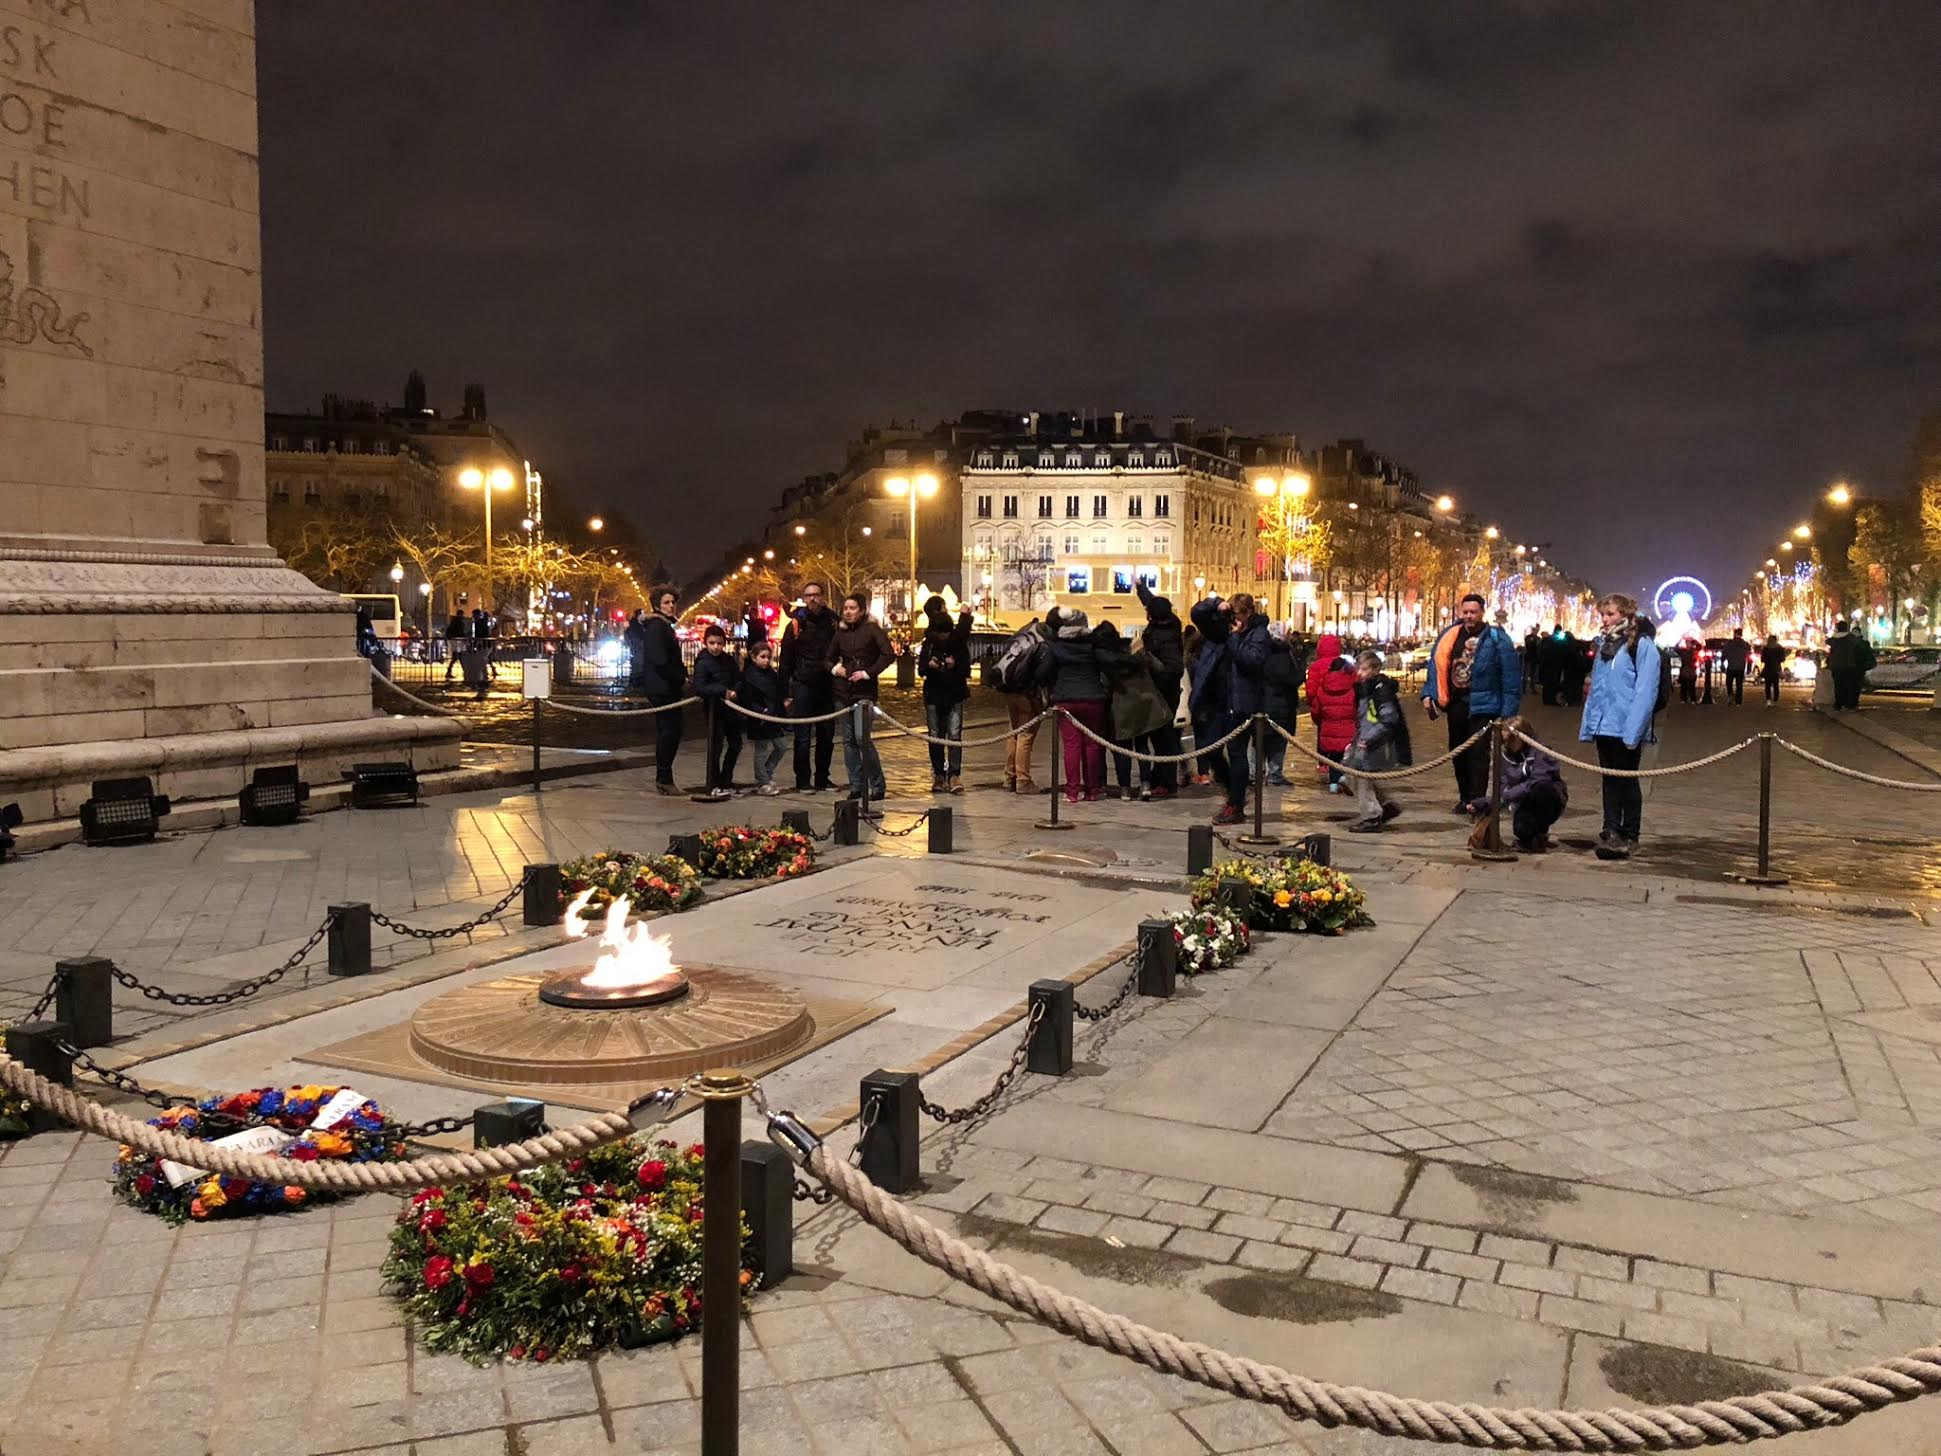 Muslim-travel-guide-Paris-tomb-of-the-unknown-soldier.jpg